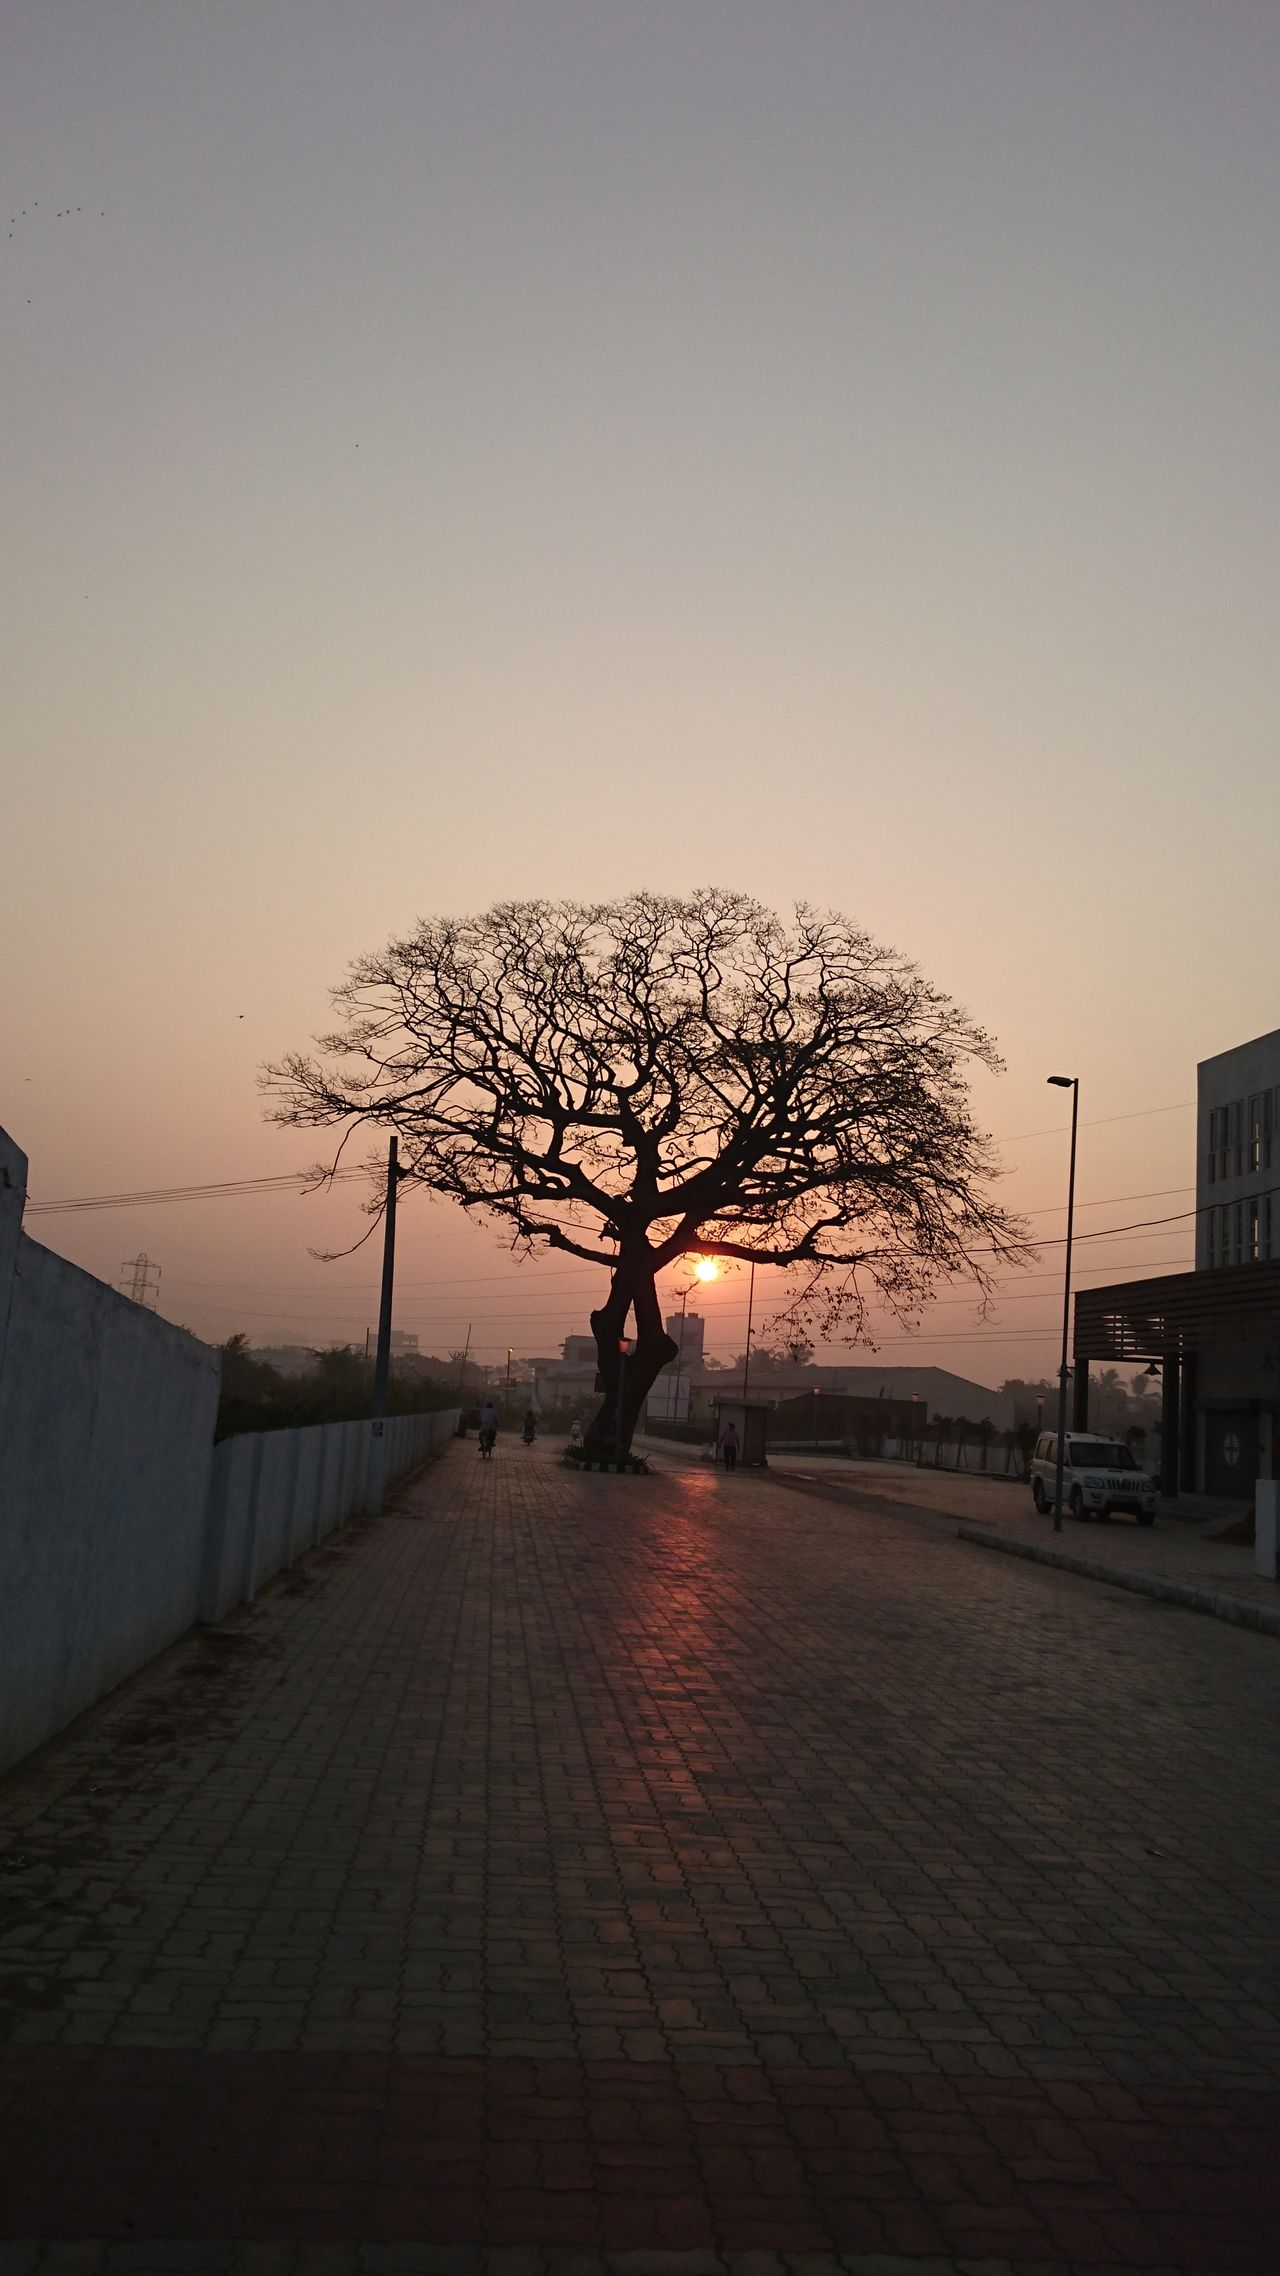 Adult Adults Only Bare Tree Beauty In Nature Day Nature One Person Outdoors People Silhouette Sky Sunset The City Light Tranquil Scene Tranquility Tree Vacations